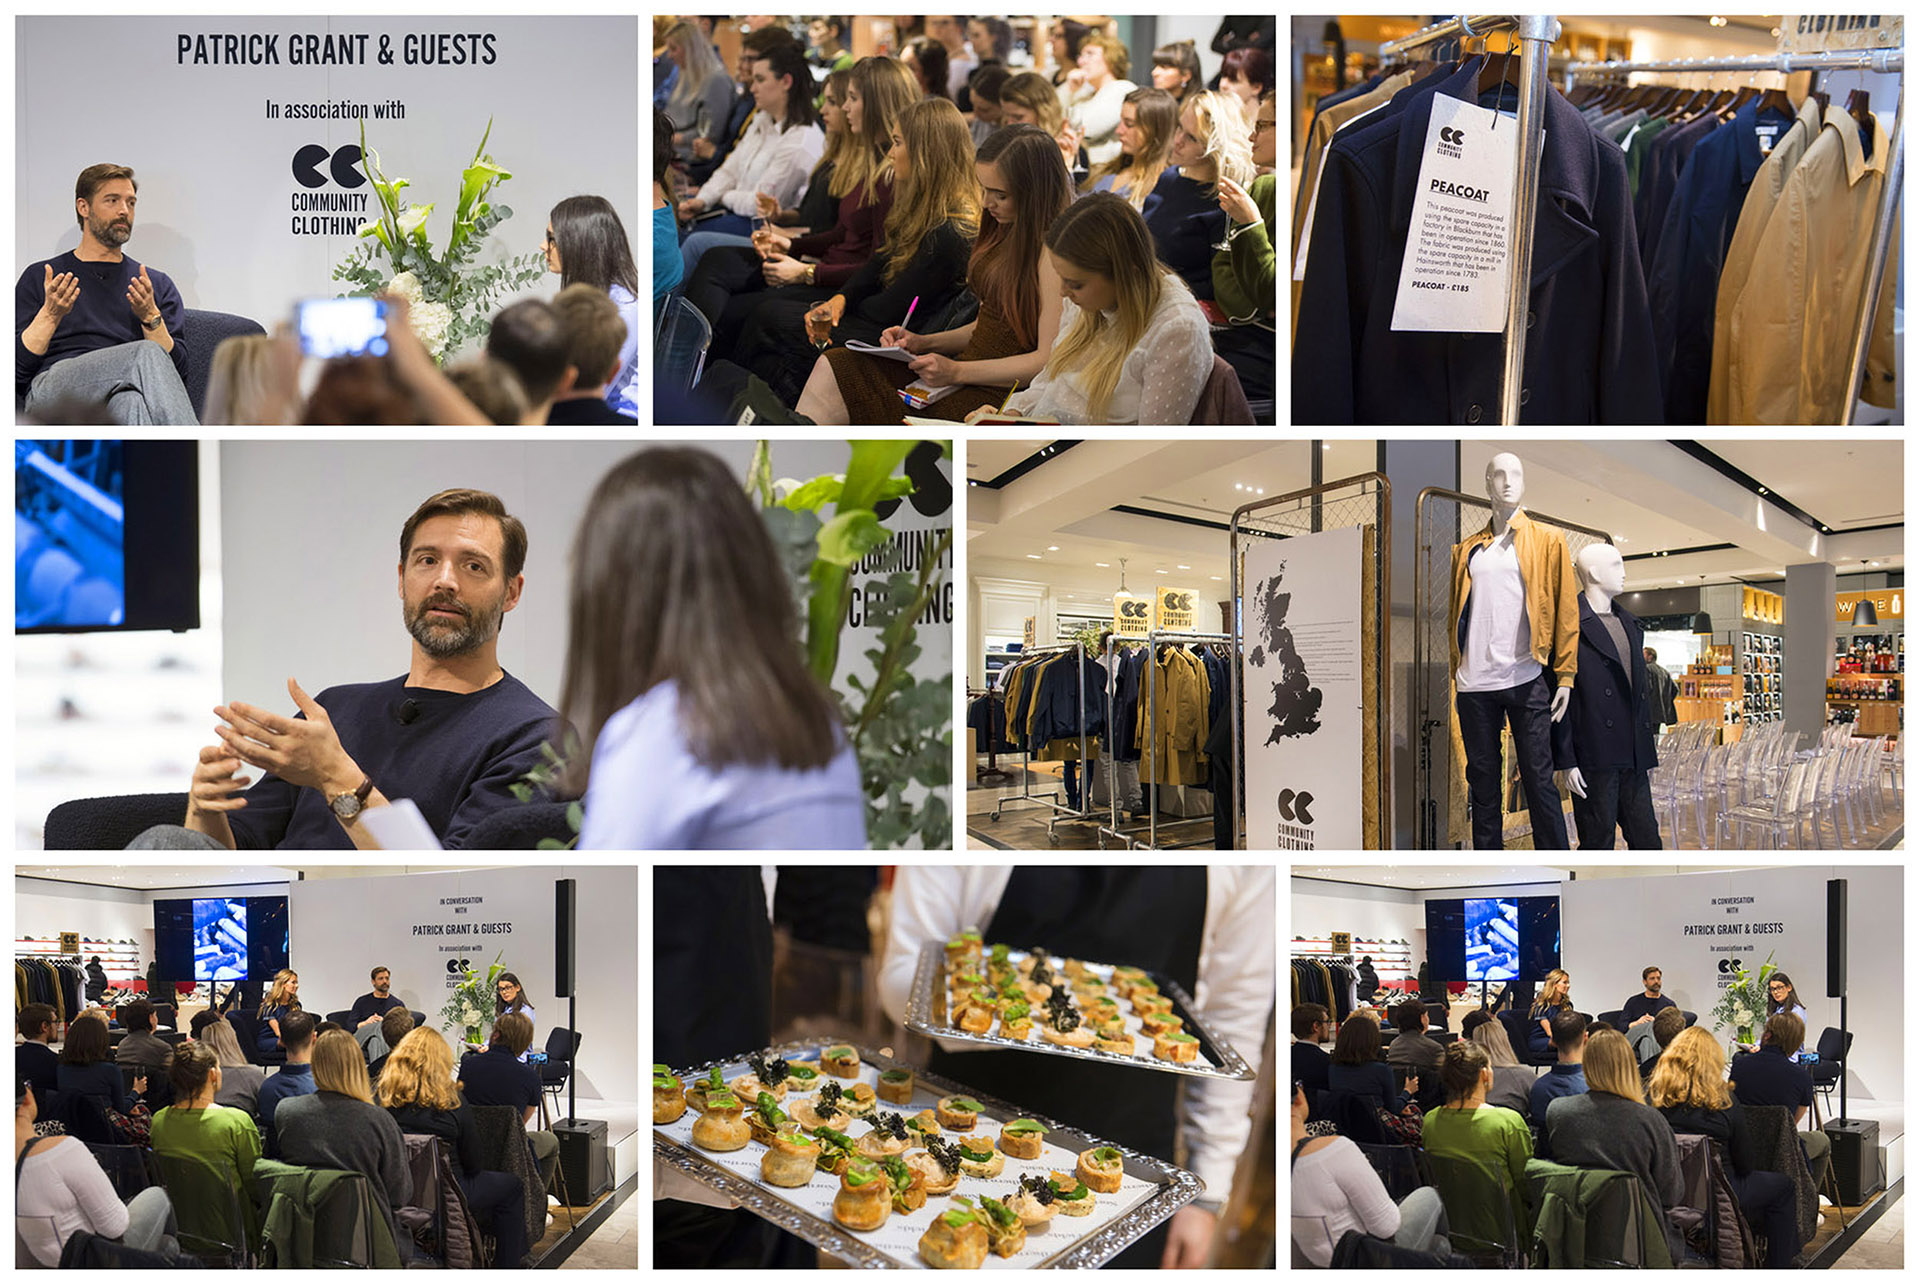 Photograph of montage of shots from Community Clothing event at Selfridges with Patrick Grant, Event Photography by Jon Parker Lee